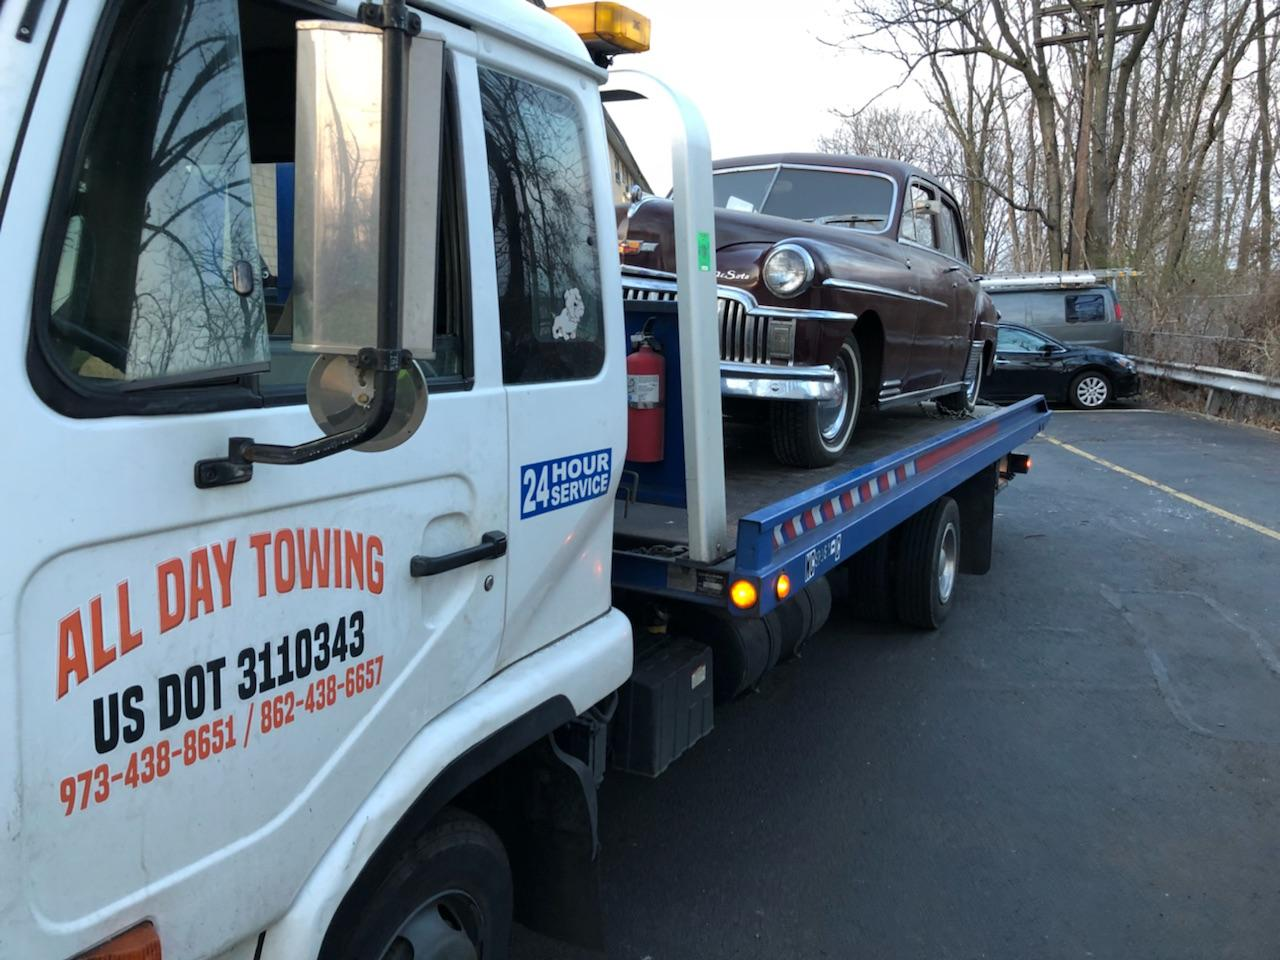 All Day Towing